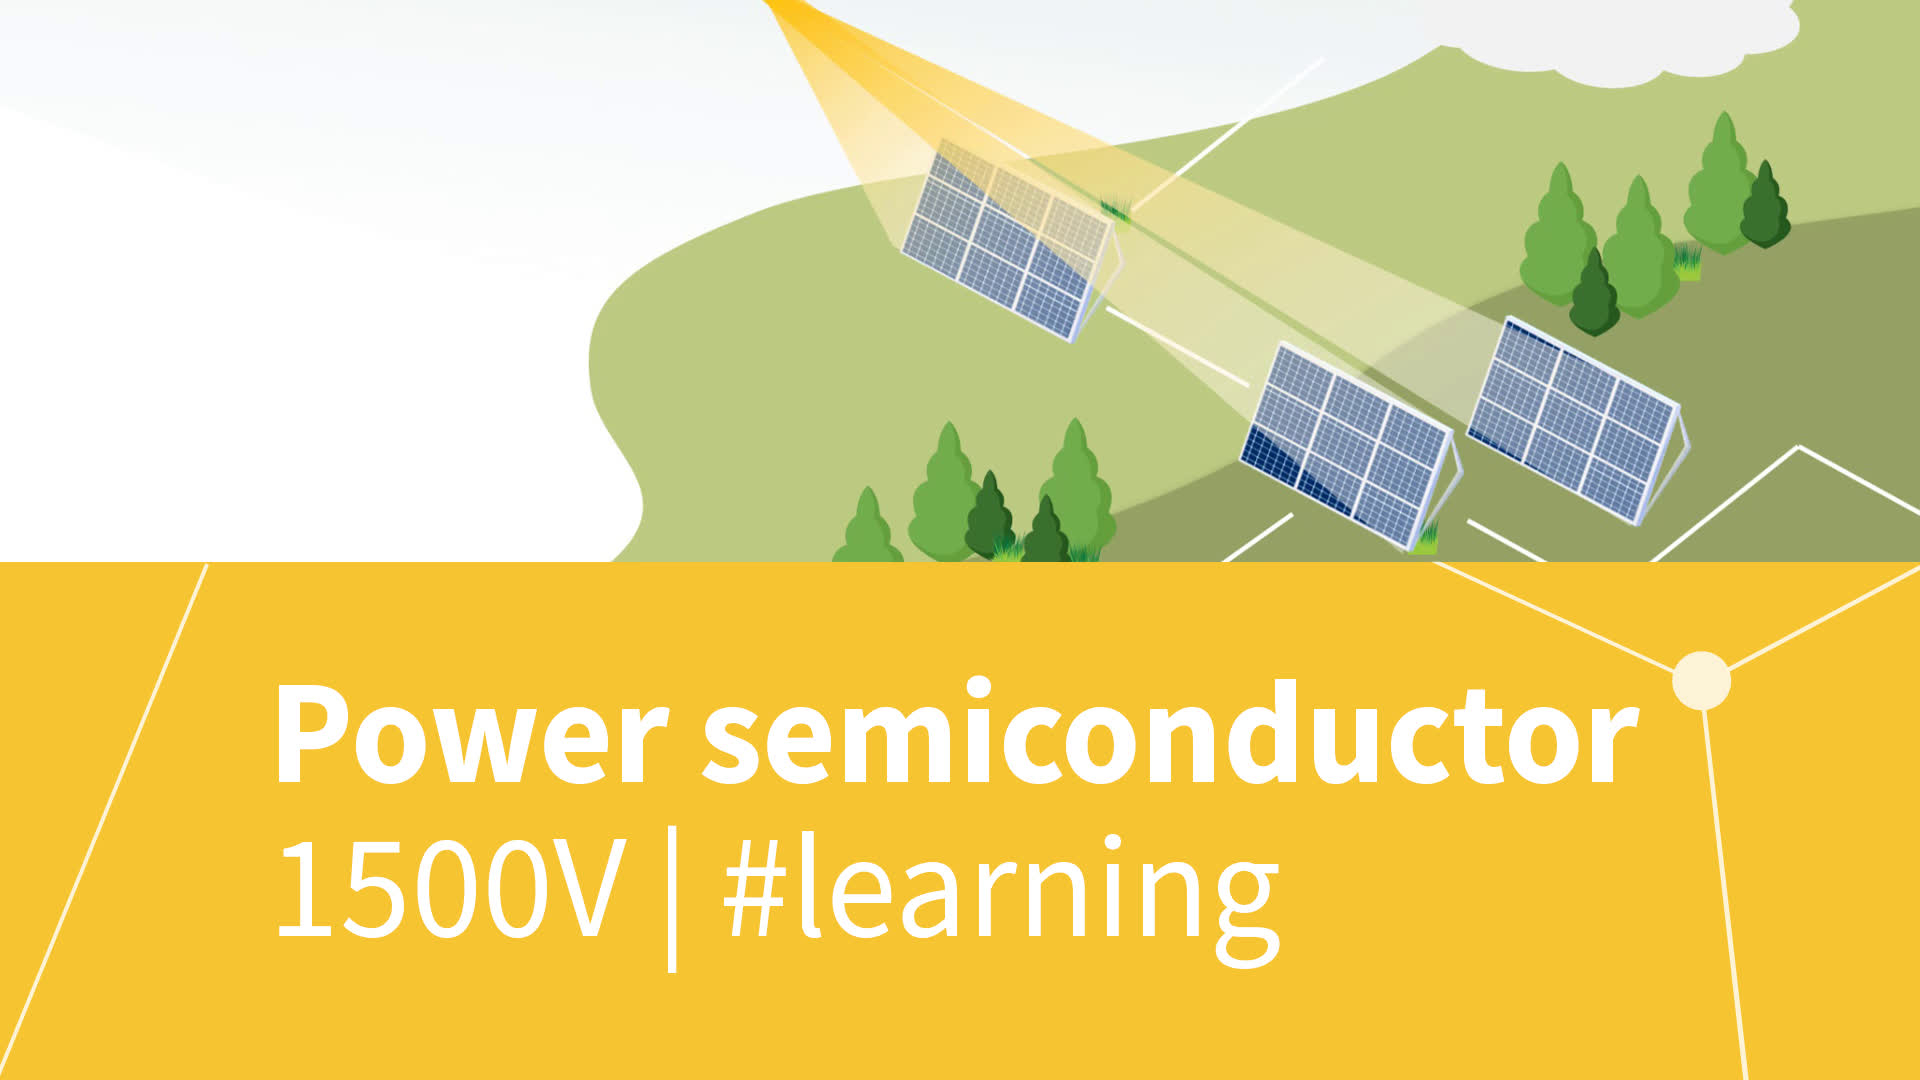 Power semiconductor solutions for 1500 V solar string inverters